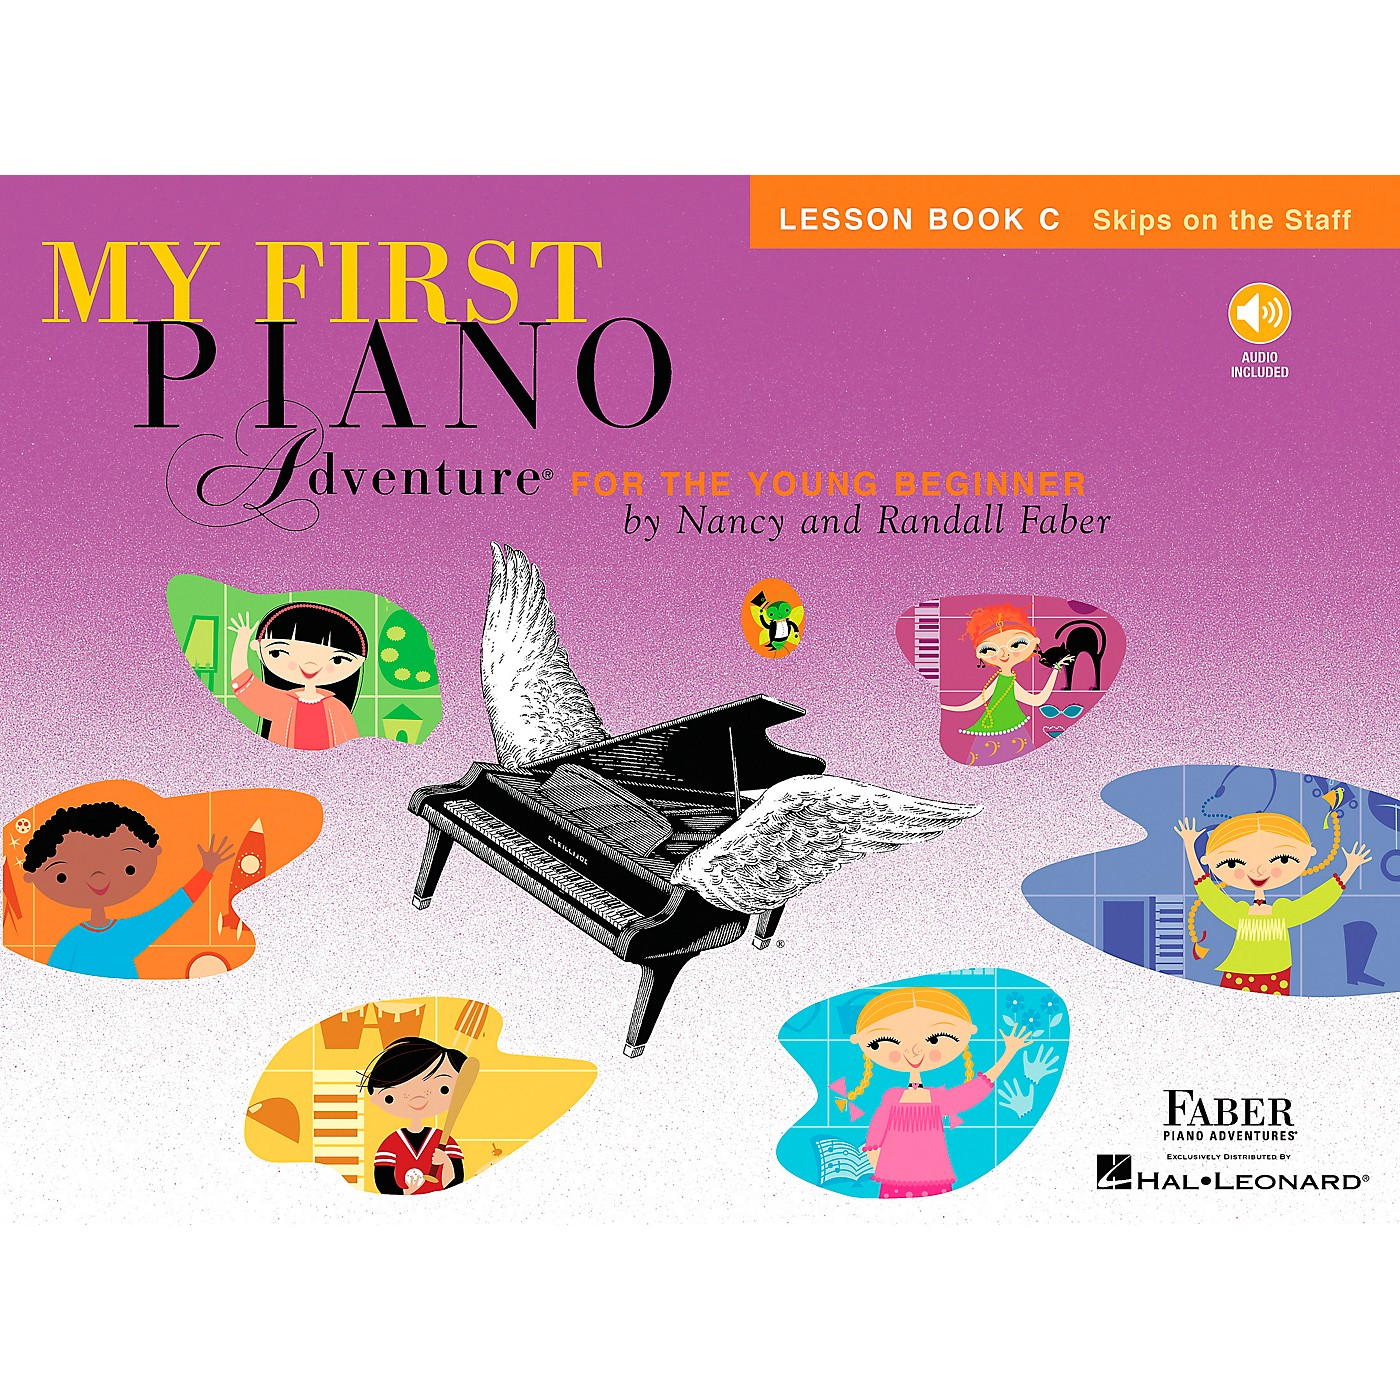 Faber Piano Adventures My First Piano Adventure Lesson Book C (Skips On The Staff) - Faber Piano thumbnail